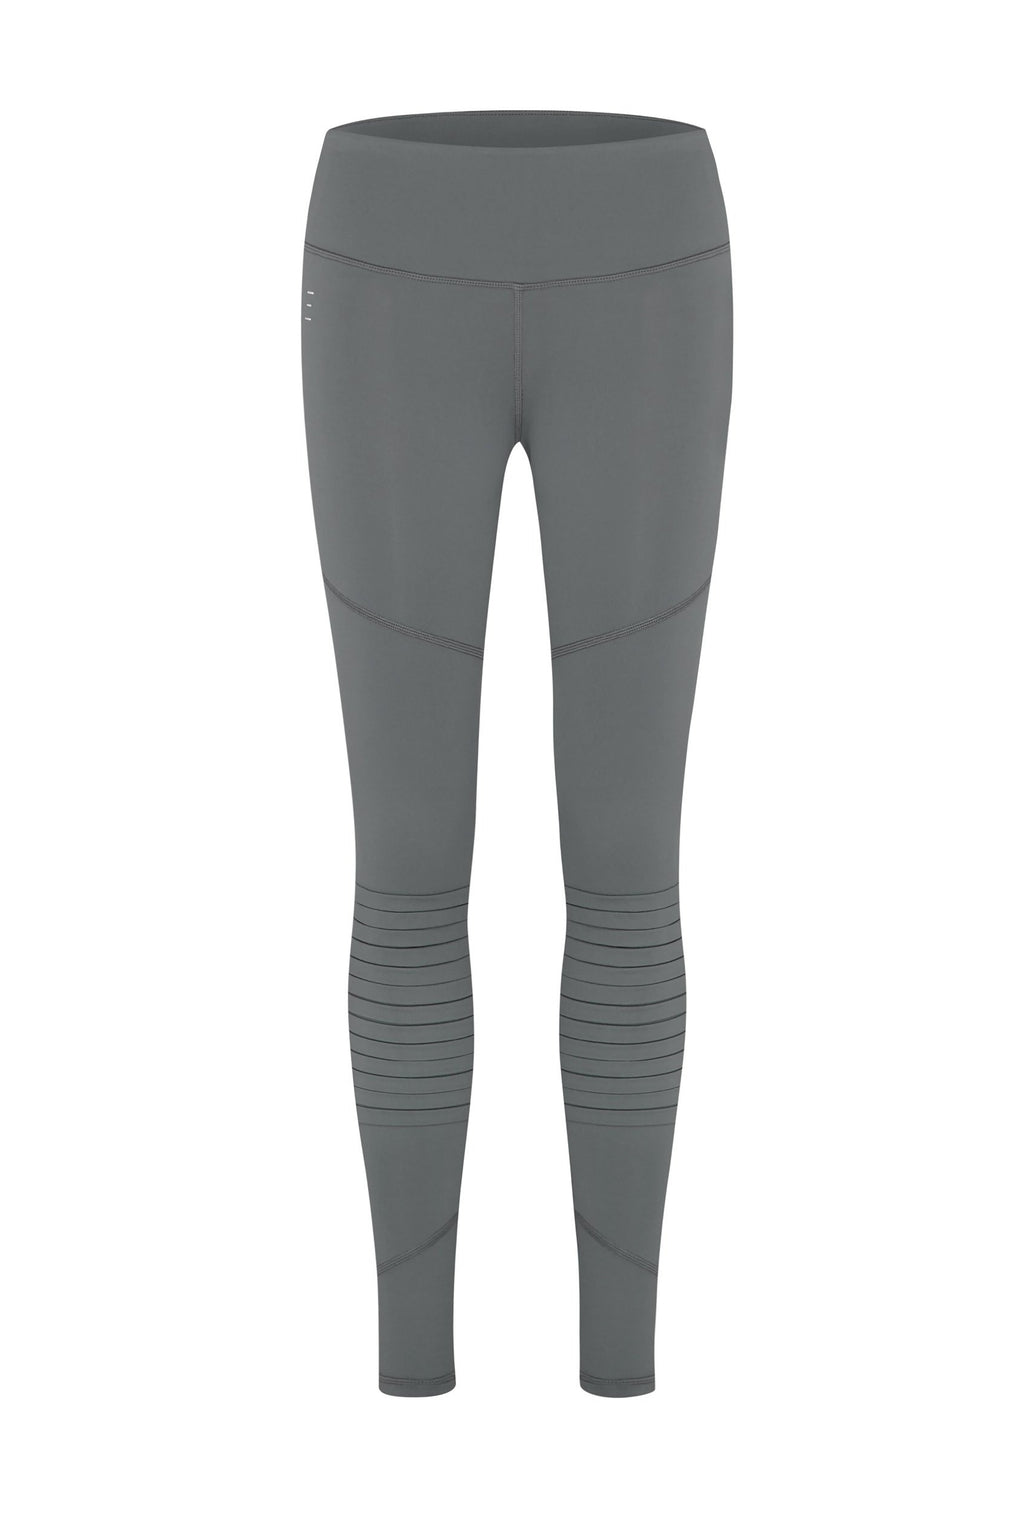 Dharshi Full Length Tight - GREY